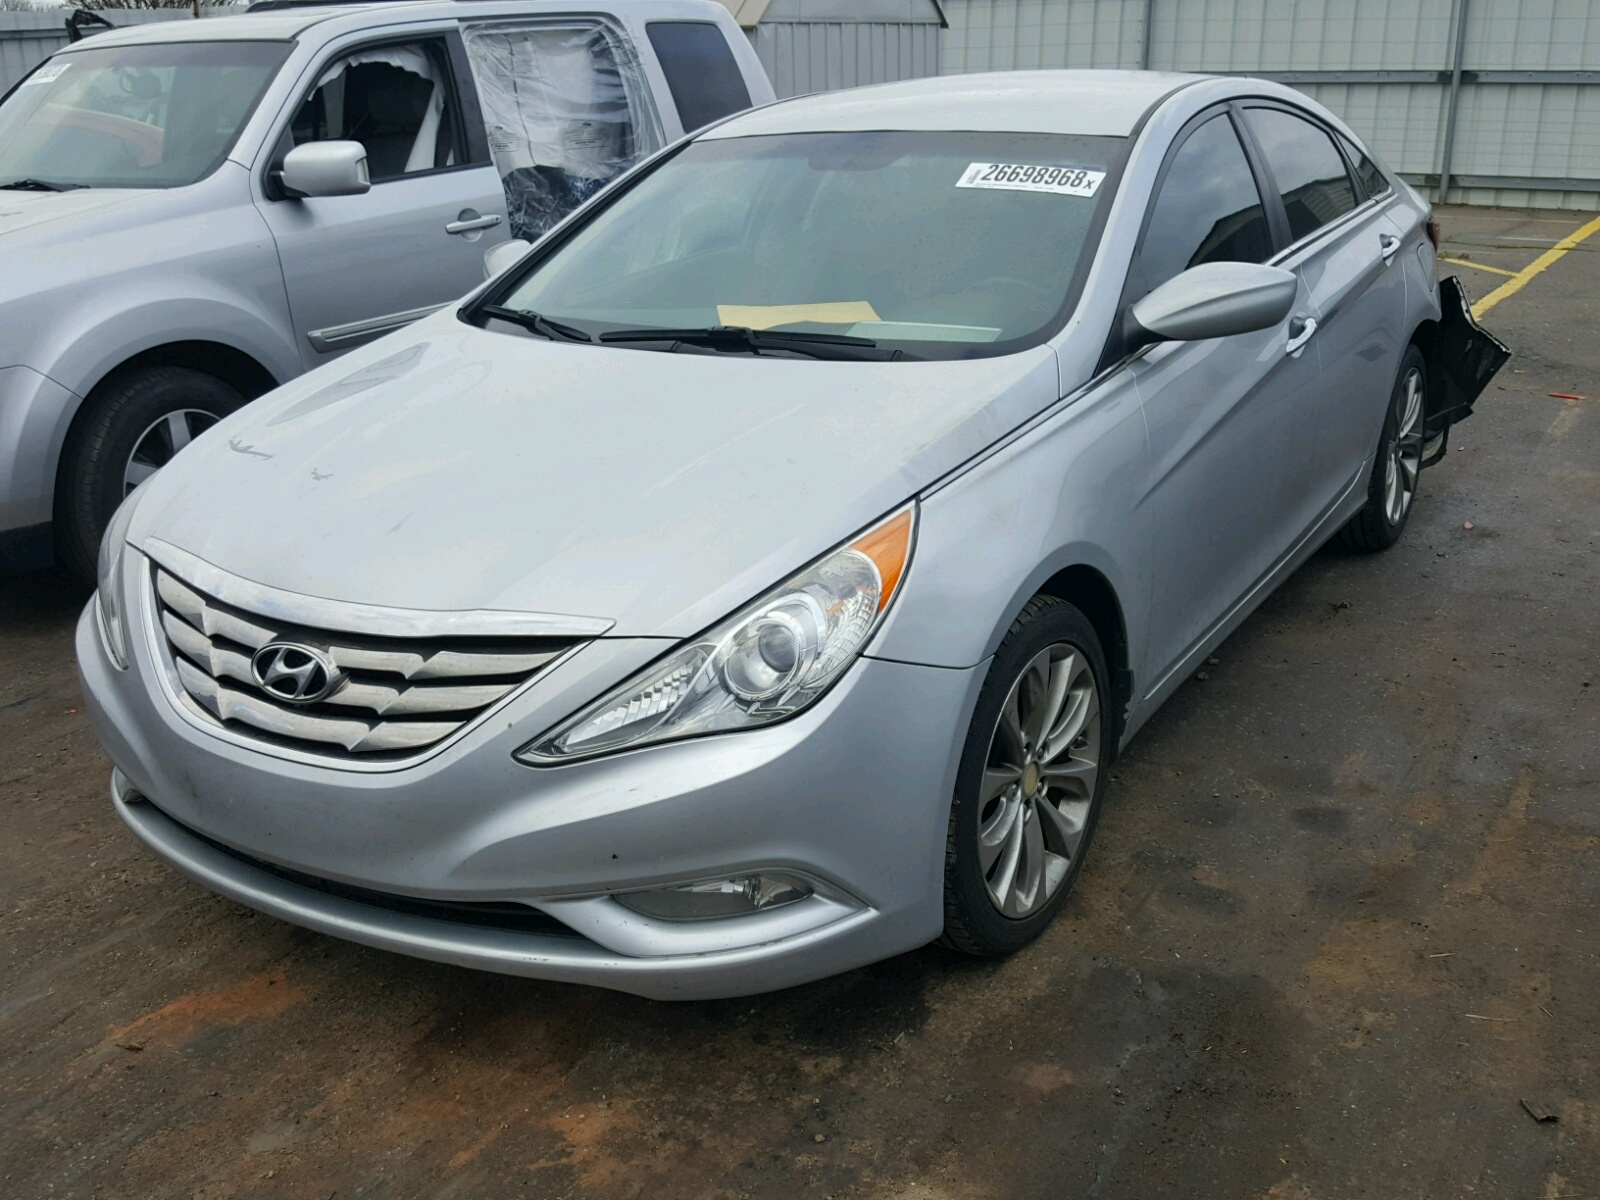 in cert sc online auctions gls en greer of salvage sale auto lot hyundai on red carfinder accent copart title